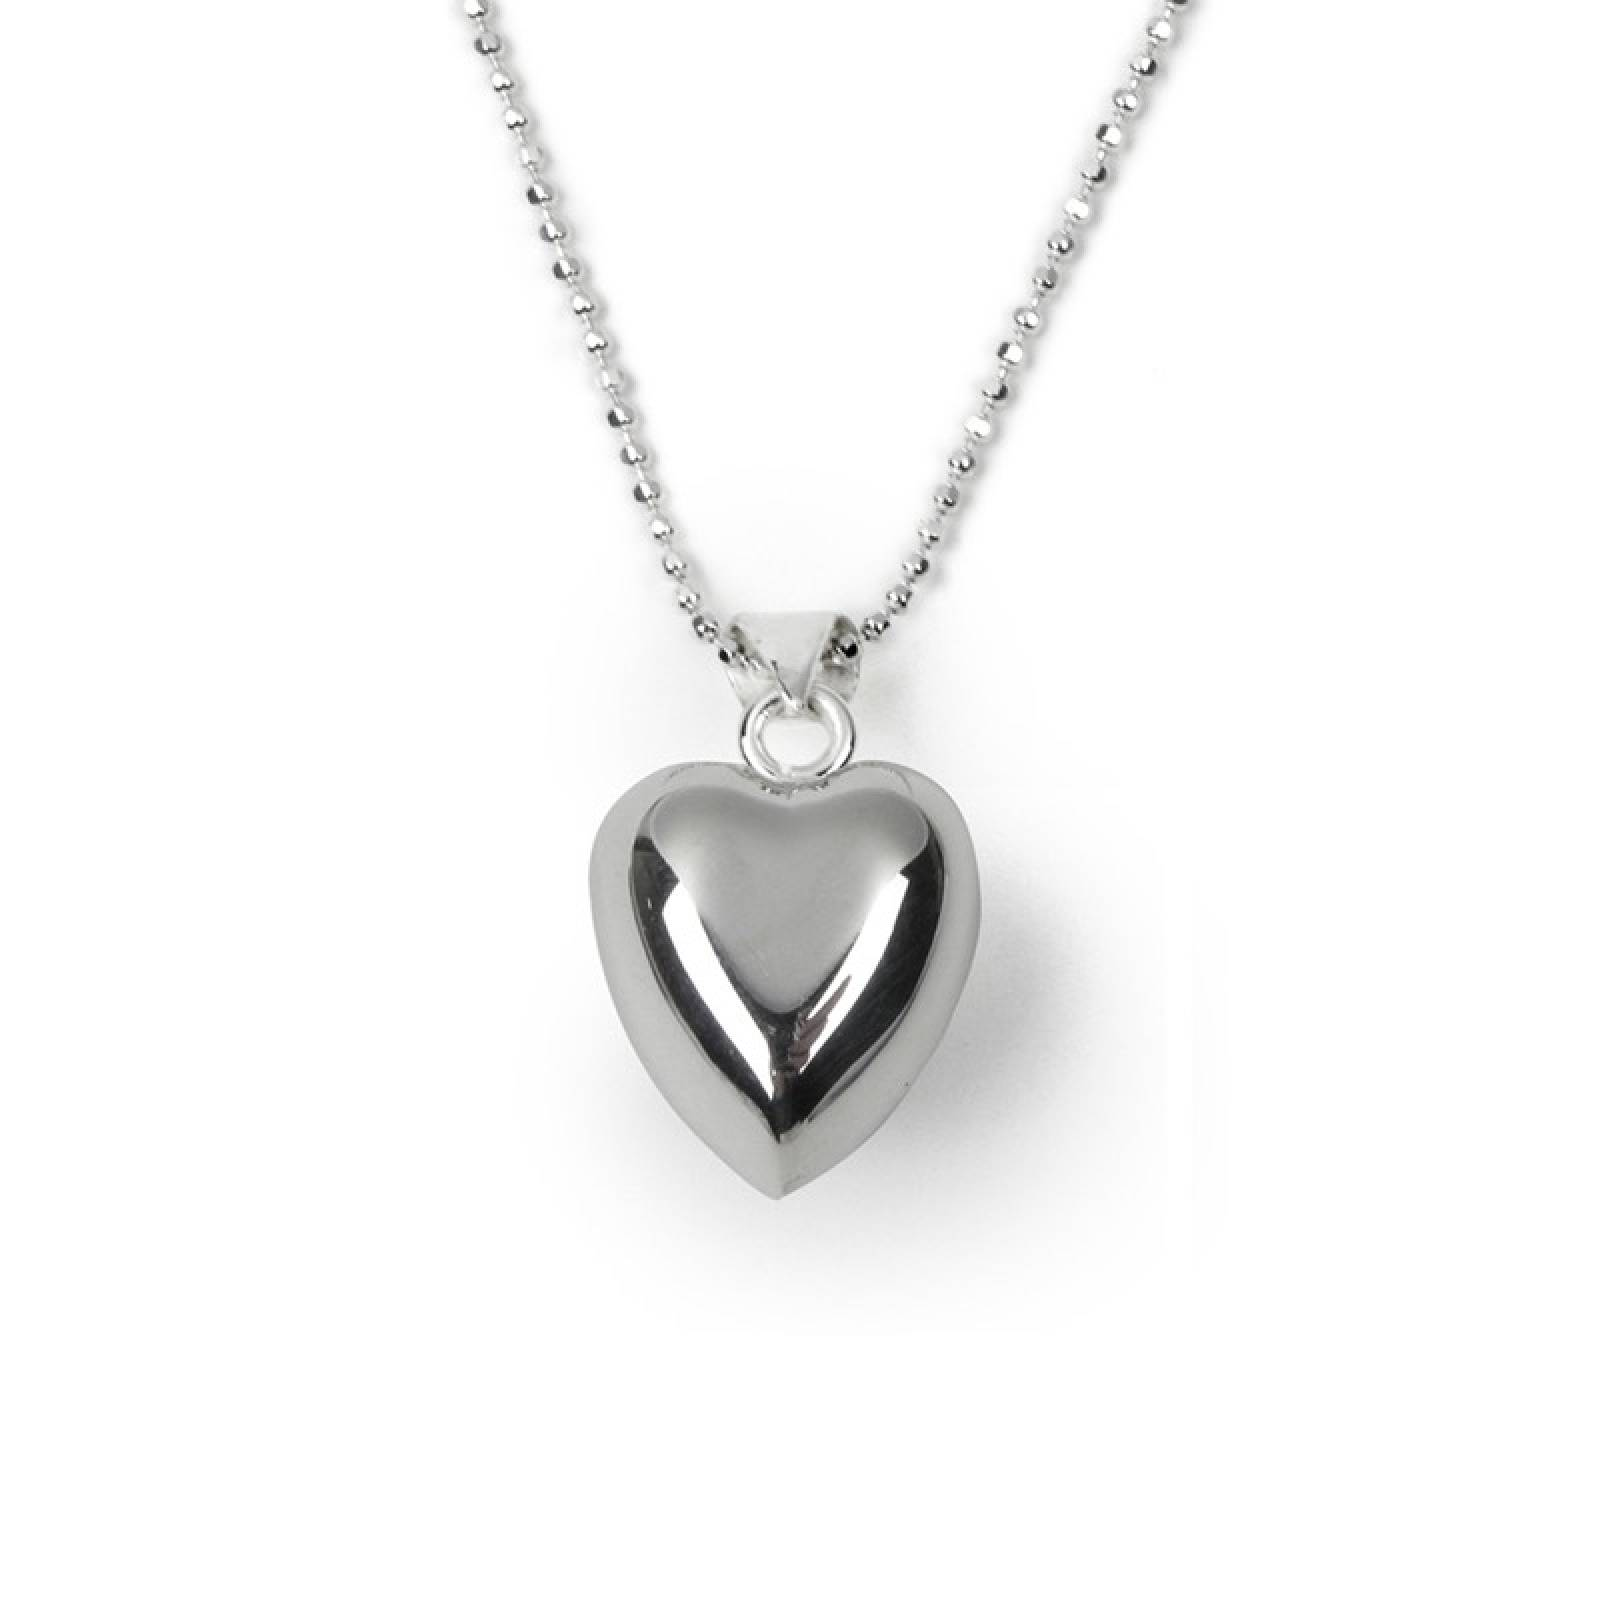 Children's Chiming Heart Necklace - Sterling Silver